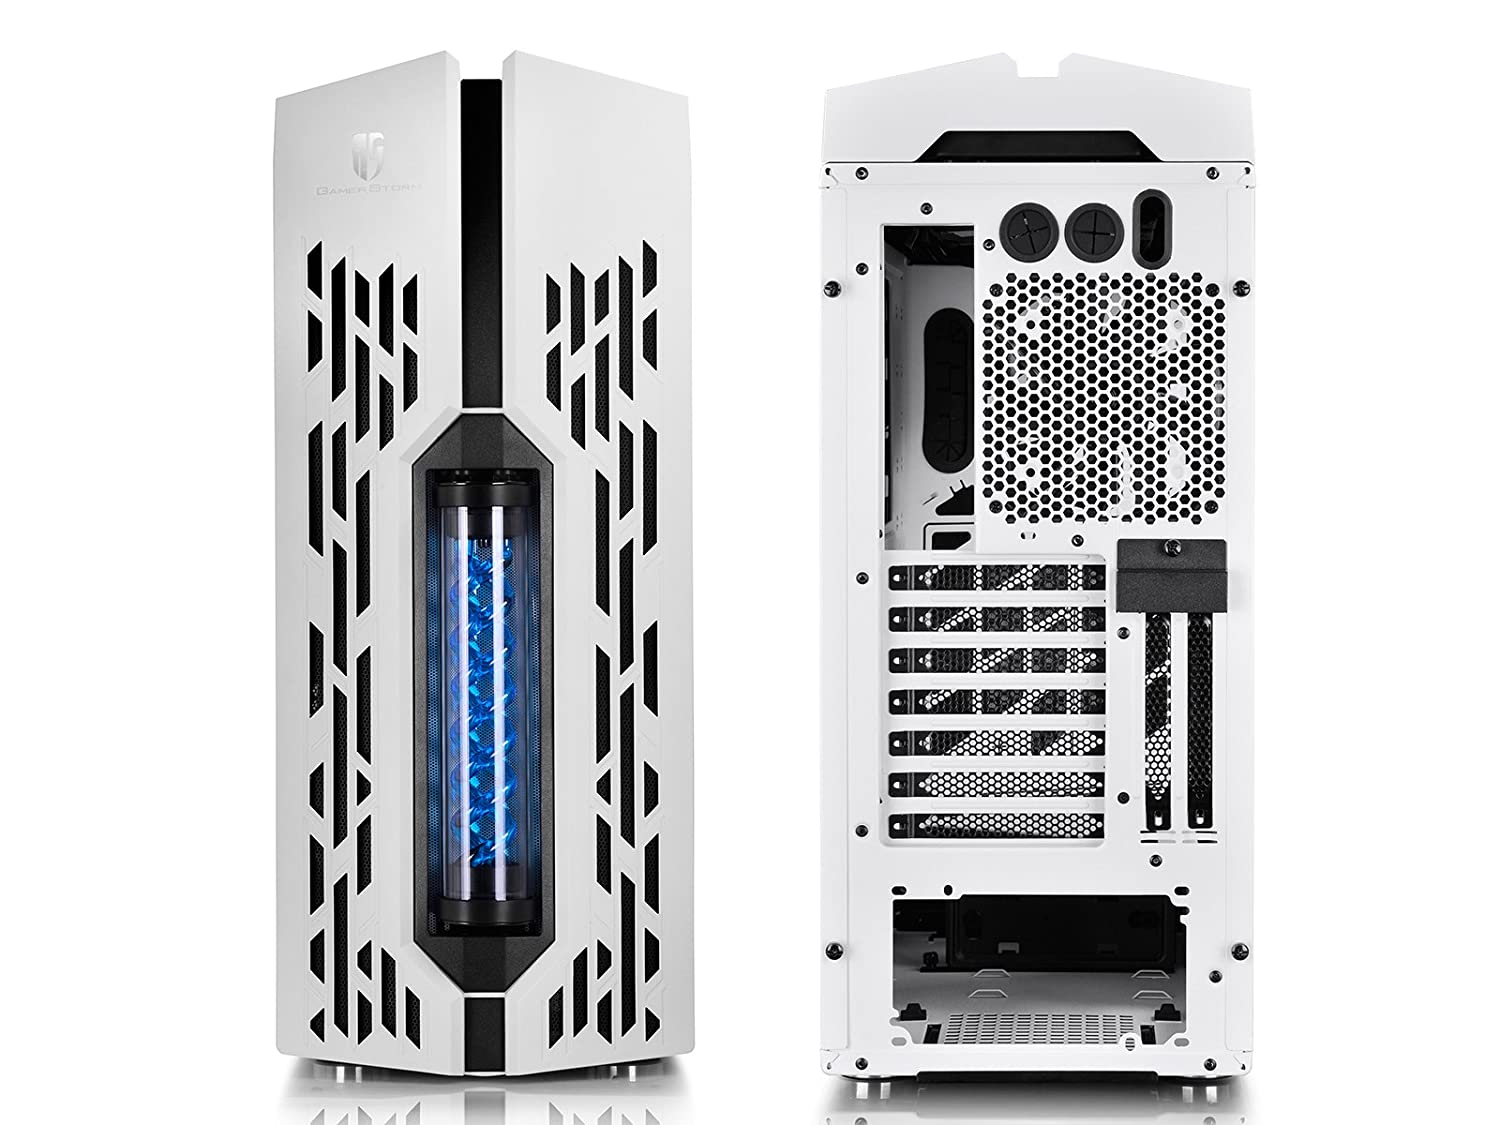 Deepcool Genome Ii Wh Bl Pc Case With Integrated 360mm Liquid U Pal Usb 30 Notebook Cooler Black I Emailed Deep Cool Ill Report Back If They Plan To Do Something About It